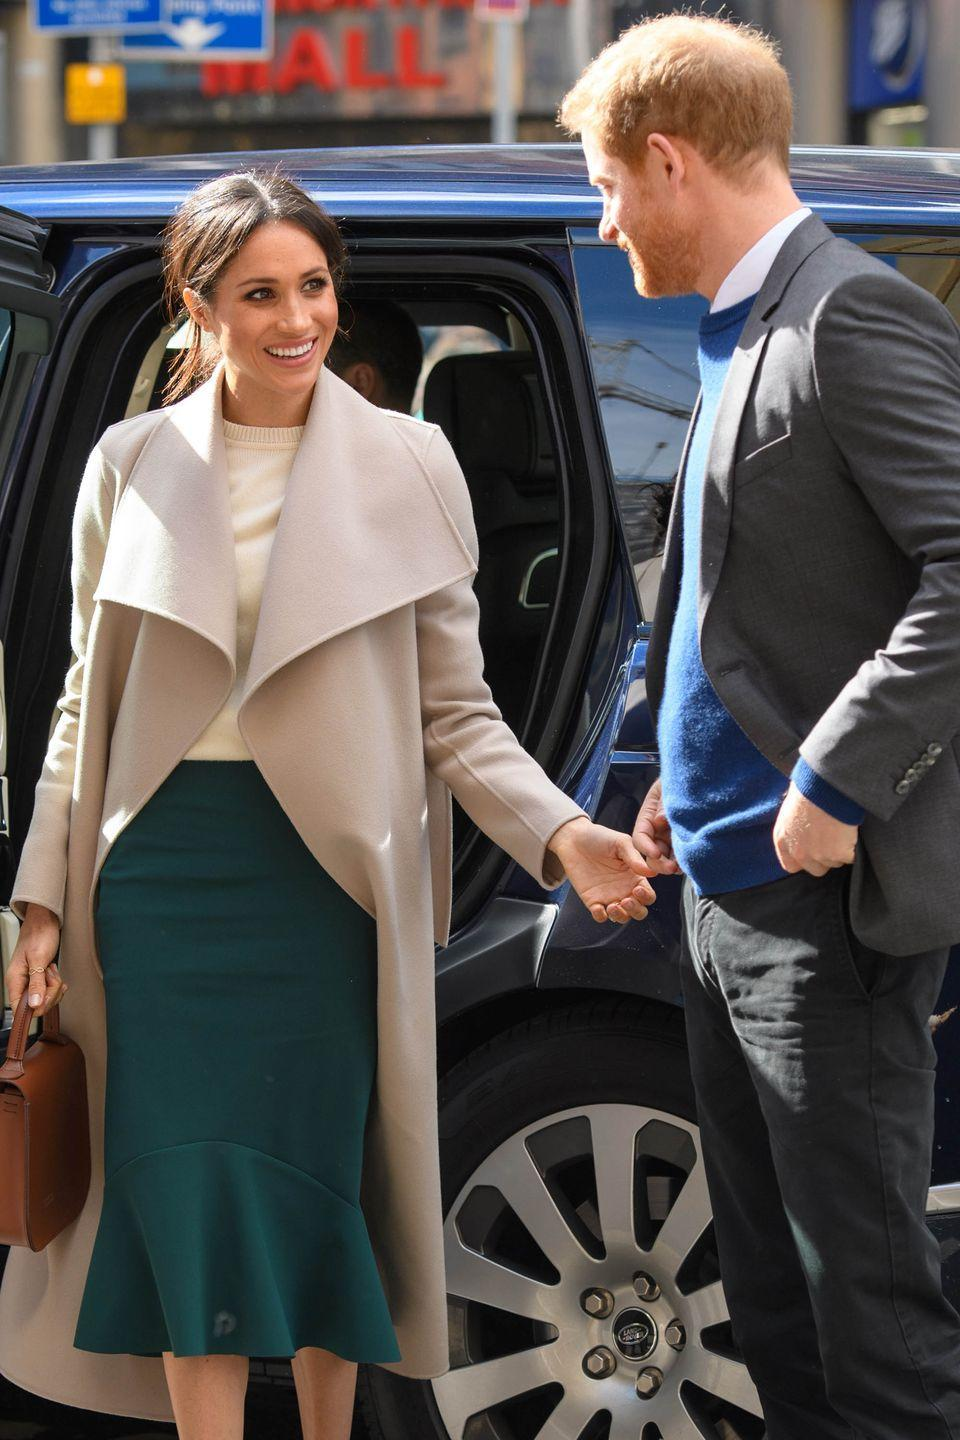 "<p>Giving his bride-to-be an adoring once-over, Prince Harry gazed at the stylish Markle, who wore a forest-green midi skirt by Toronto-based brand <a class=""link rapid-noclick-resp"" href=""https://gretaconstantine.com/index.html"" rel=""nofollow noopener"" target=""_blank"" data-ylk=""slk:Greta Constantine"">Greta Constantine</a> and a Victoria Beckham-designed cream cashmere sweater, under a <a class=""link rapid-noclick-resp"" href=""https://www.mackage.com/mai-belted-wool-coat-with-waterfall-collar/MAI.html"" rel=""nofollow noopener"" target=""_blank"" data-ylk=""slk:Mackage wool coat"">Mackage wool coat</a>.</p>"